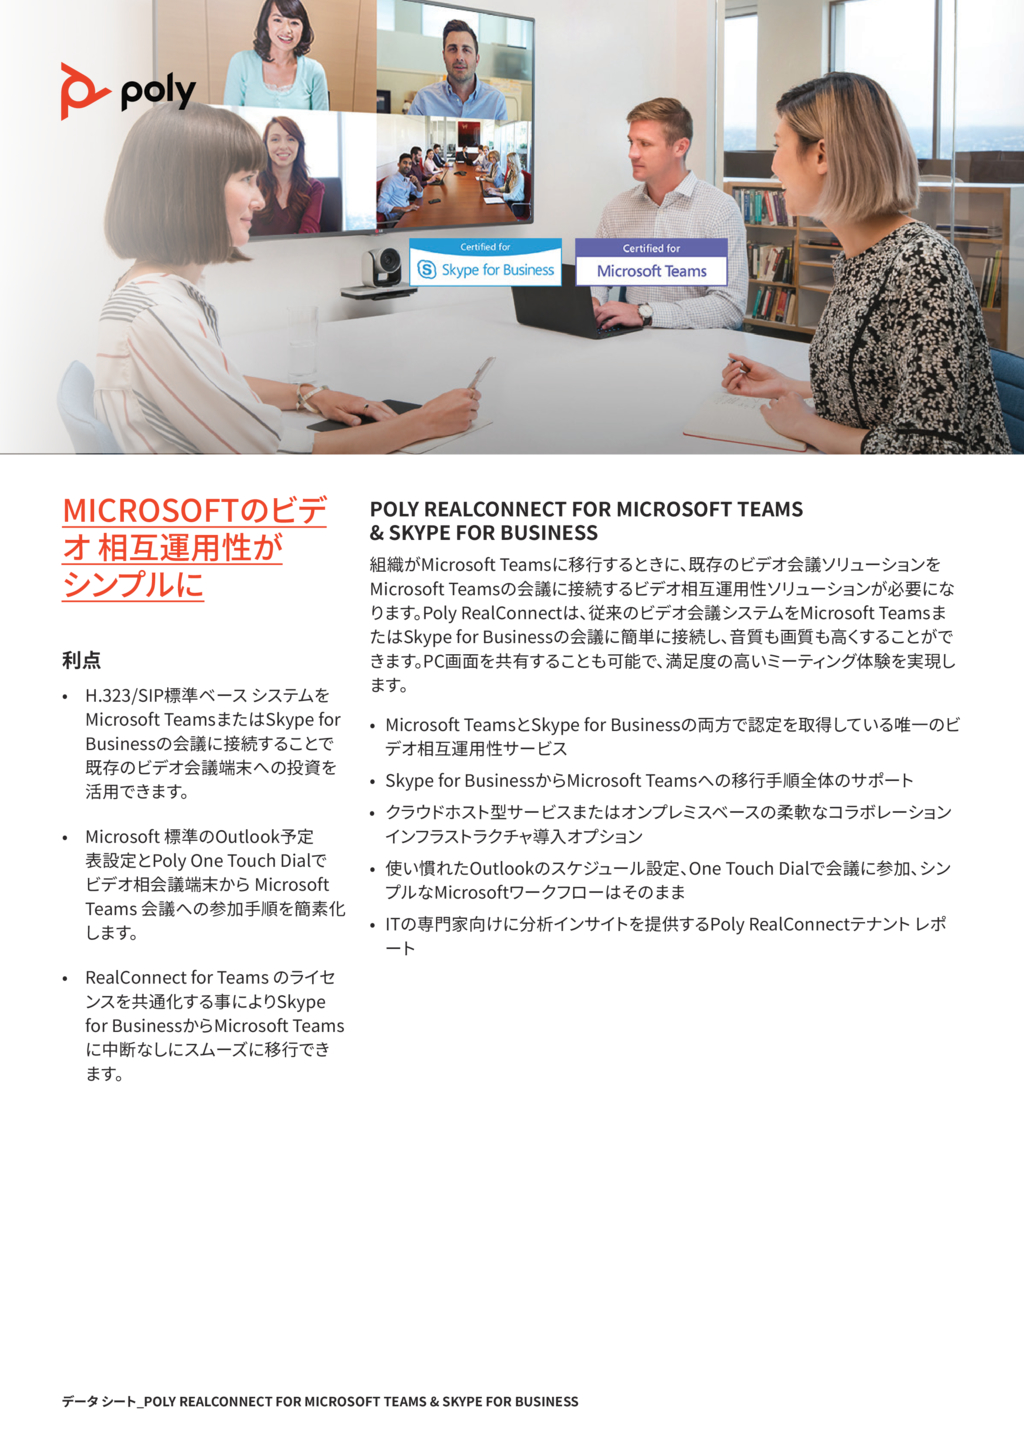 Poly RealConnect for Teamsの資料